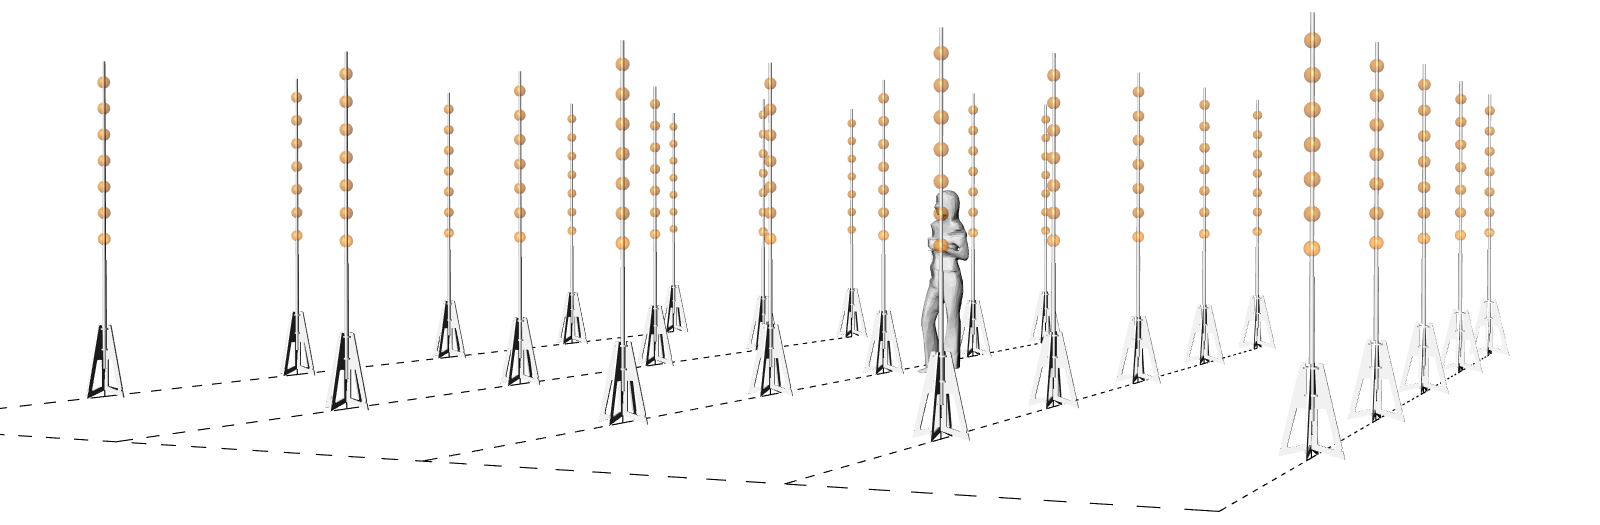 """Each ball in this diagram represents 5 uniquely addressable RGD LED lights. These can be controlled on/off or dimmed to create a range of static and dynamic """"luminous forms"""". Specific points, lines, planes and volumes can be defined within this 3d field."""